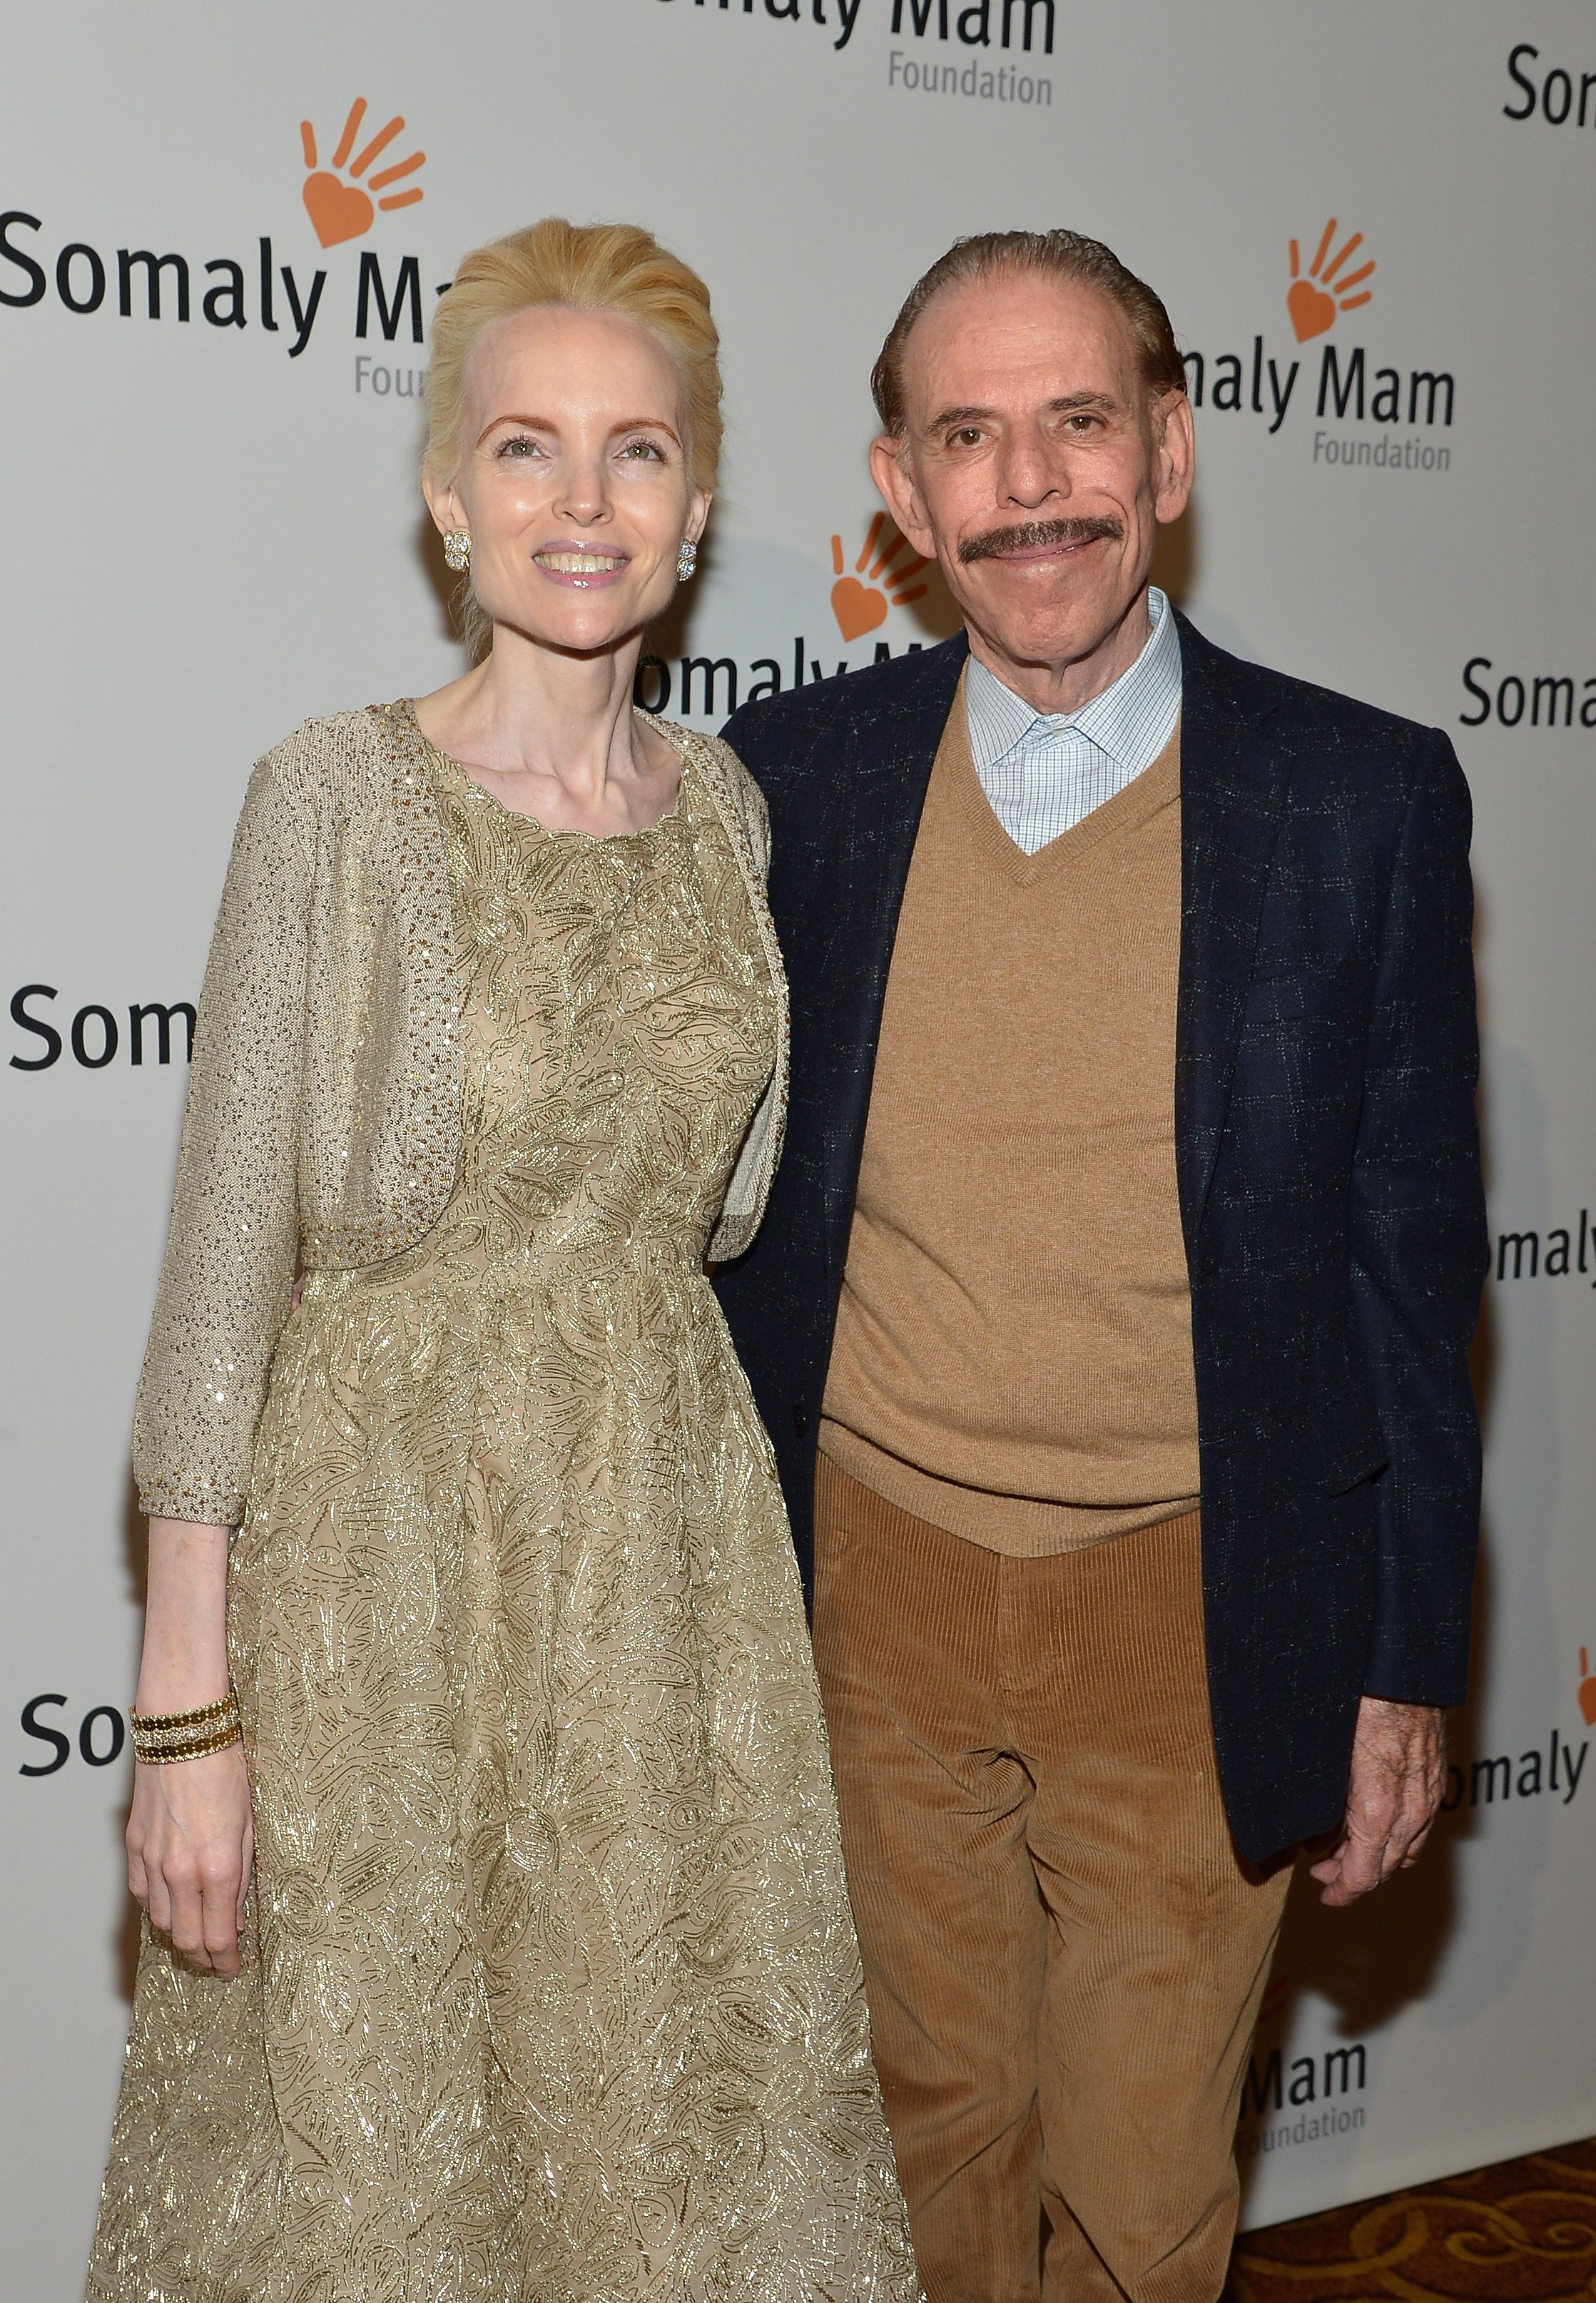 Photo of Peter Max and Mary Max | Photo: Getty Images